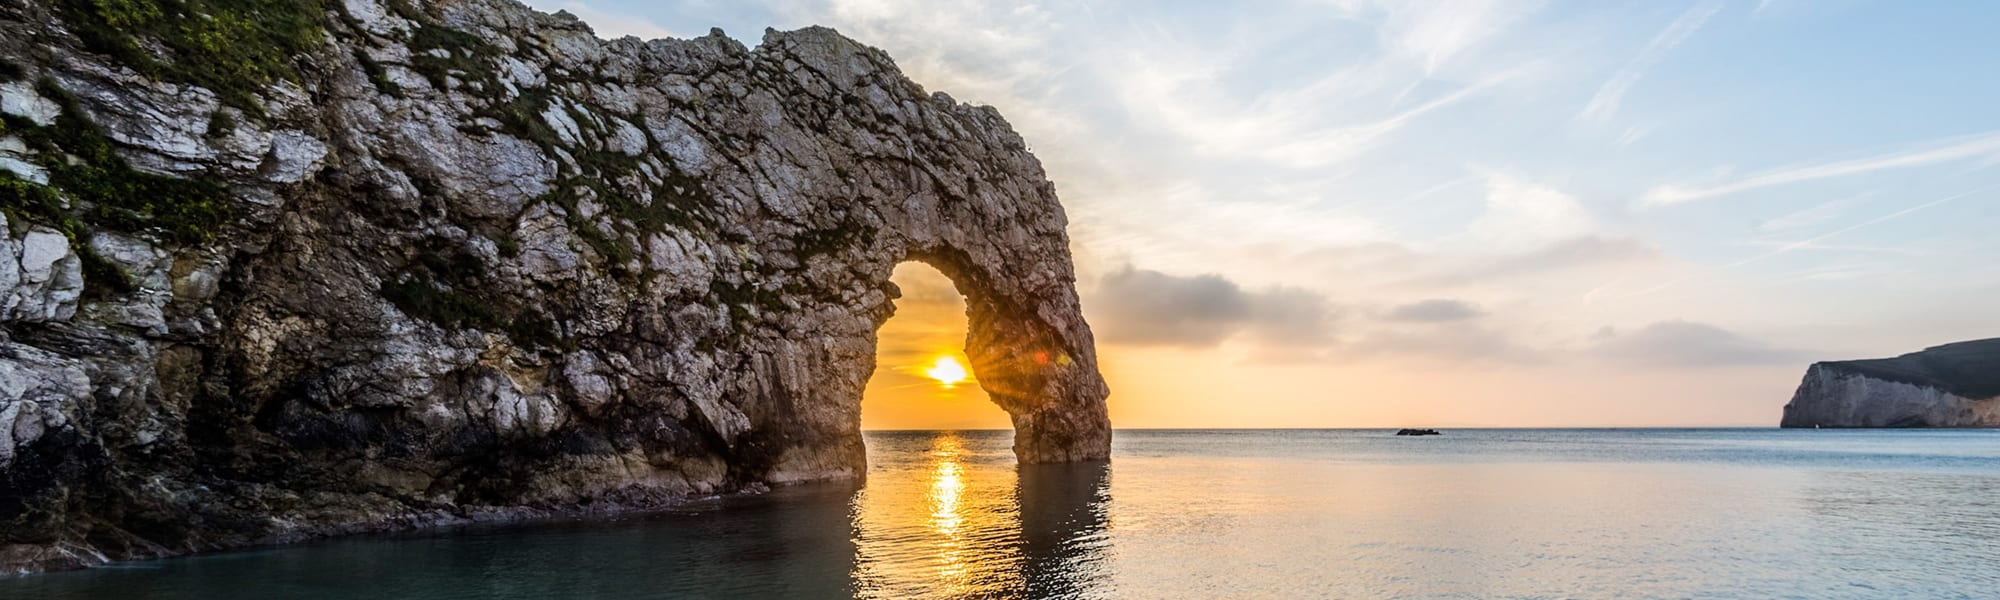 SWACP banner image of the Durdle Door